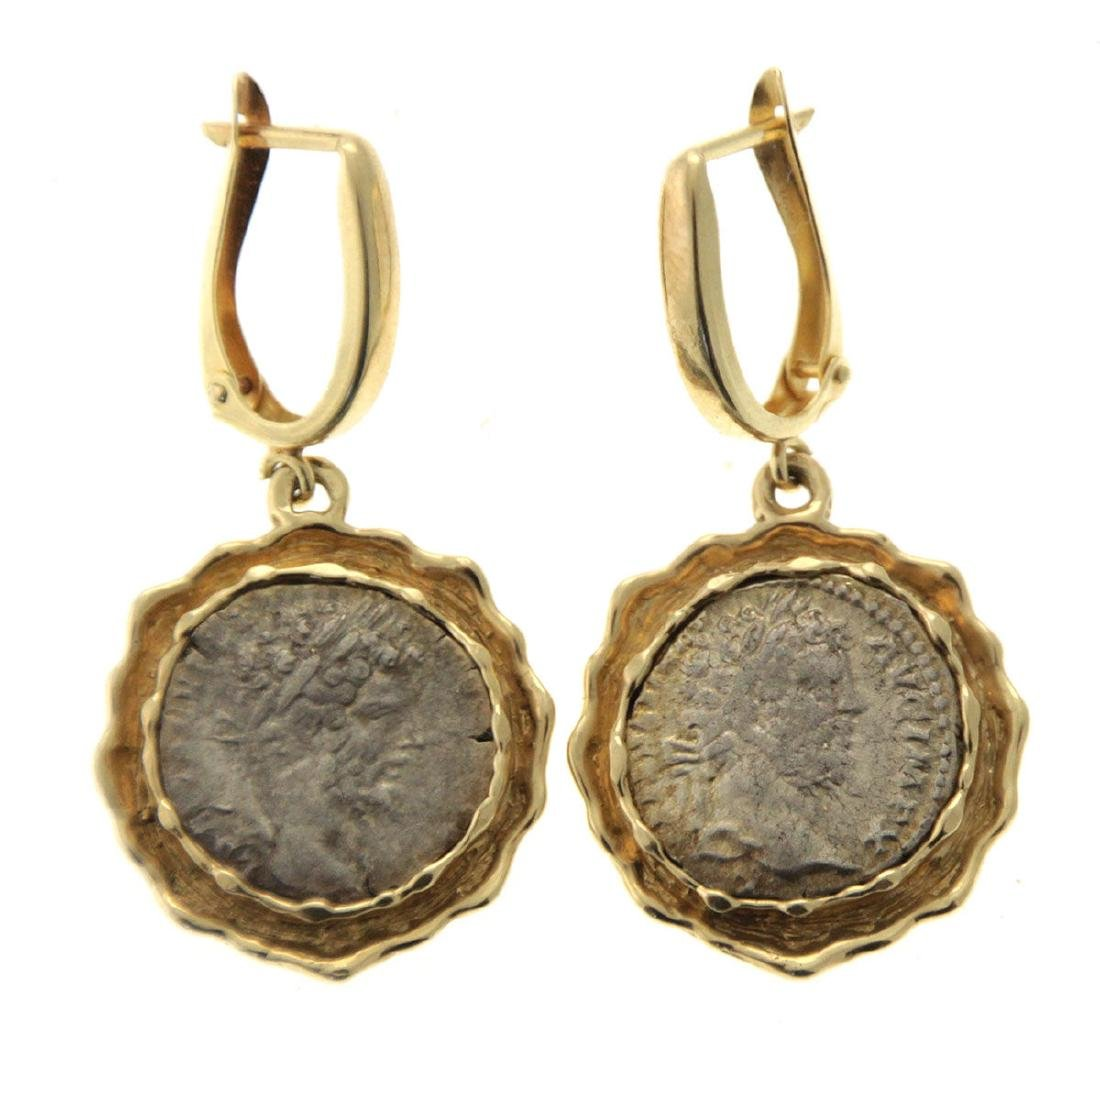 Pair of 14k Yellow Gold Earrings with Ancient Roman